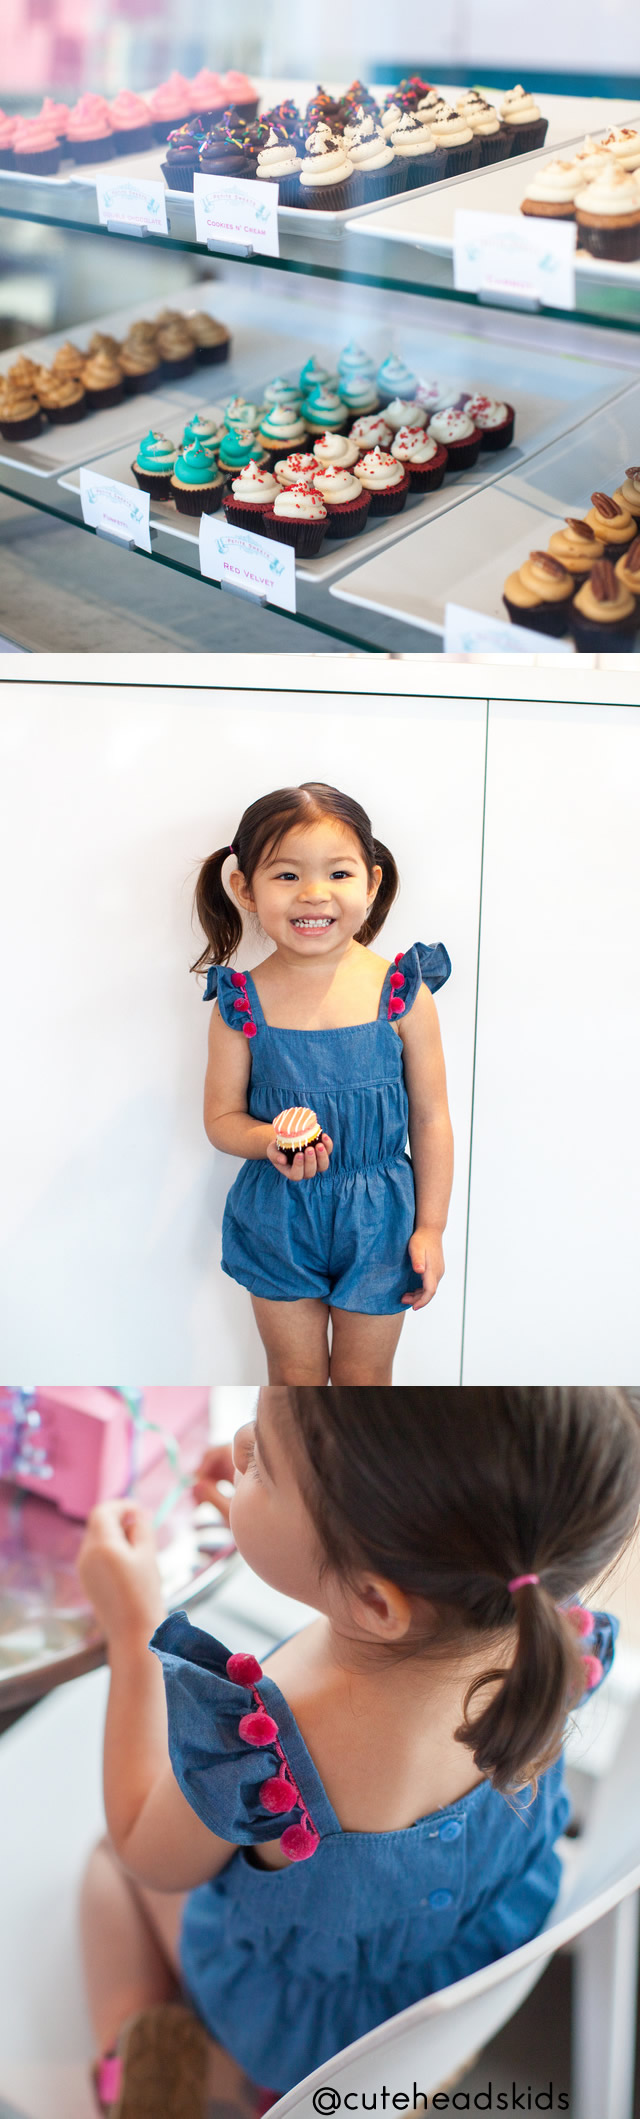 cute kids fashion and cupcakes for Houston bakery Petite Sweets. Desserts and chambray rompers go well together. via @cuteheads